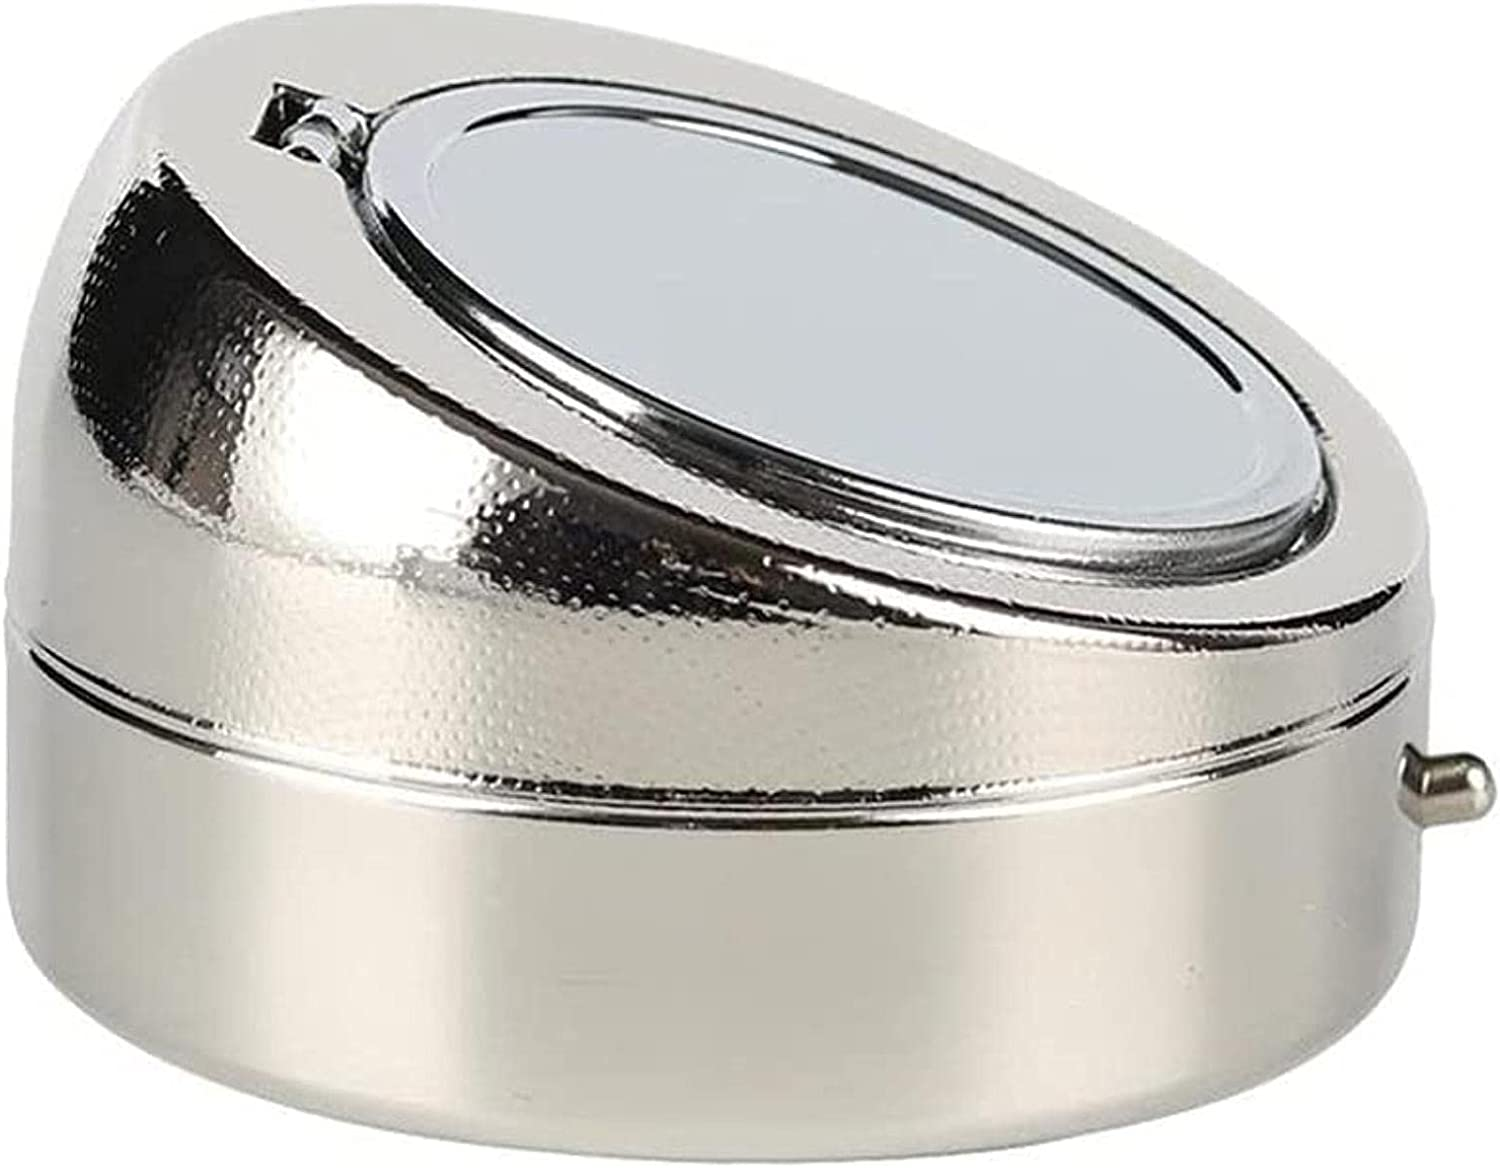 KMDJ Stainless Steel Car Ashtray Office Smokeless Portable Home Weekly update Inexpensive